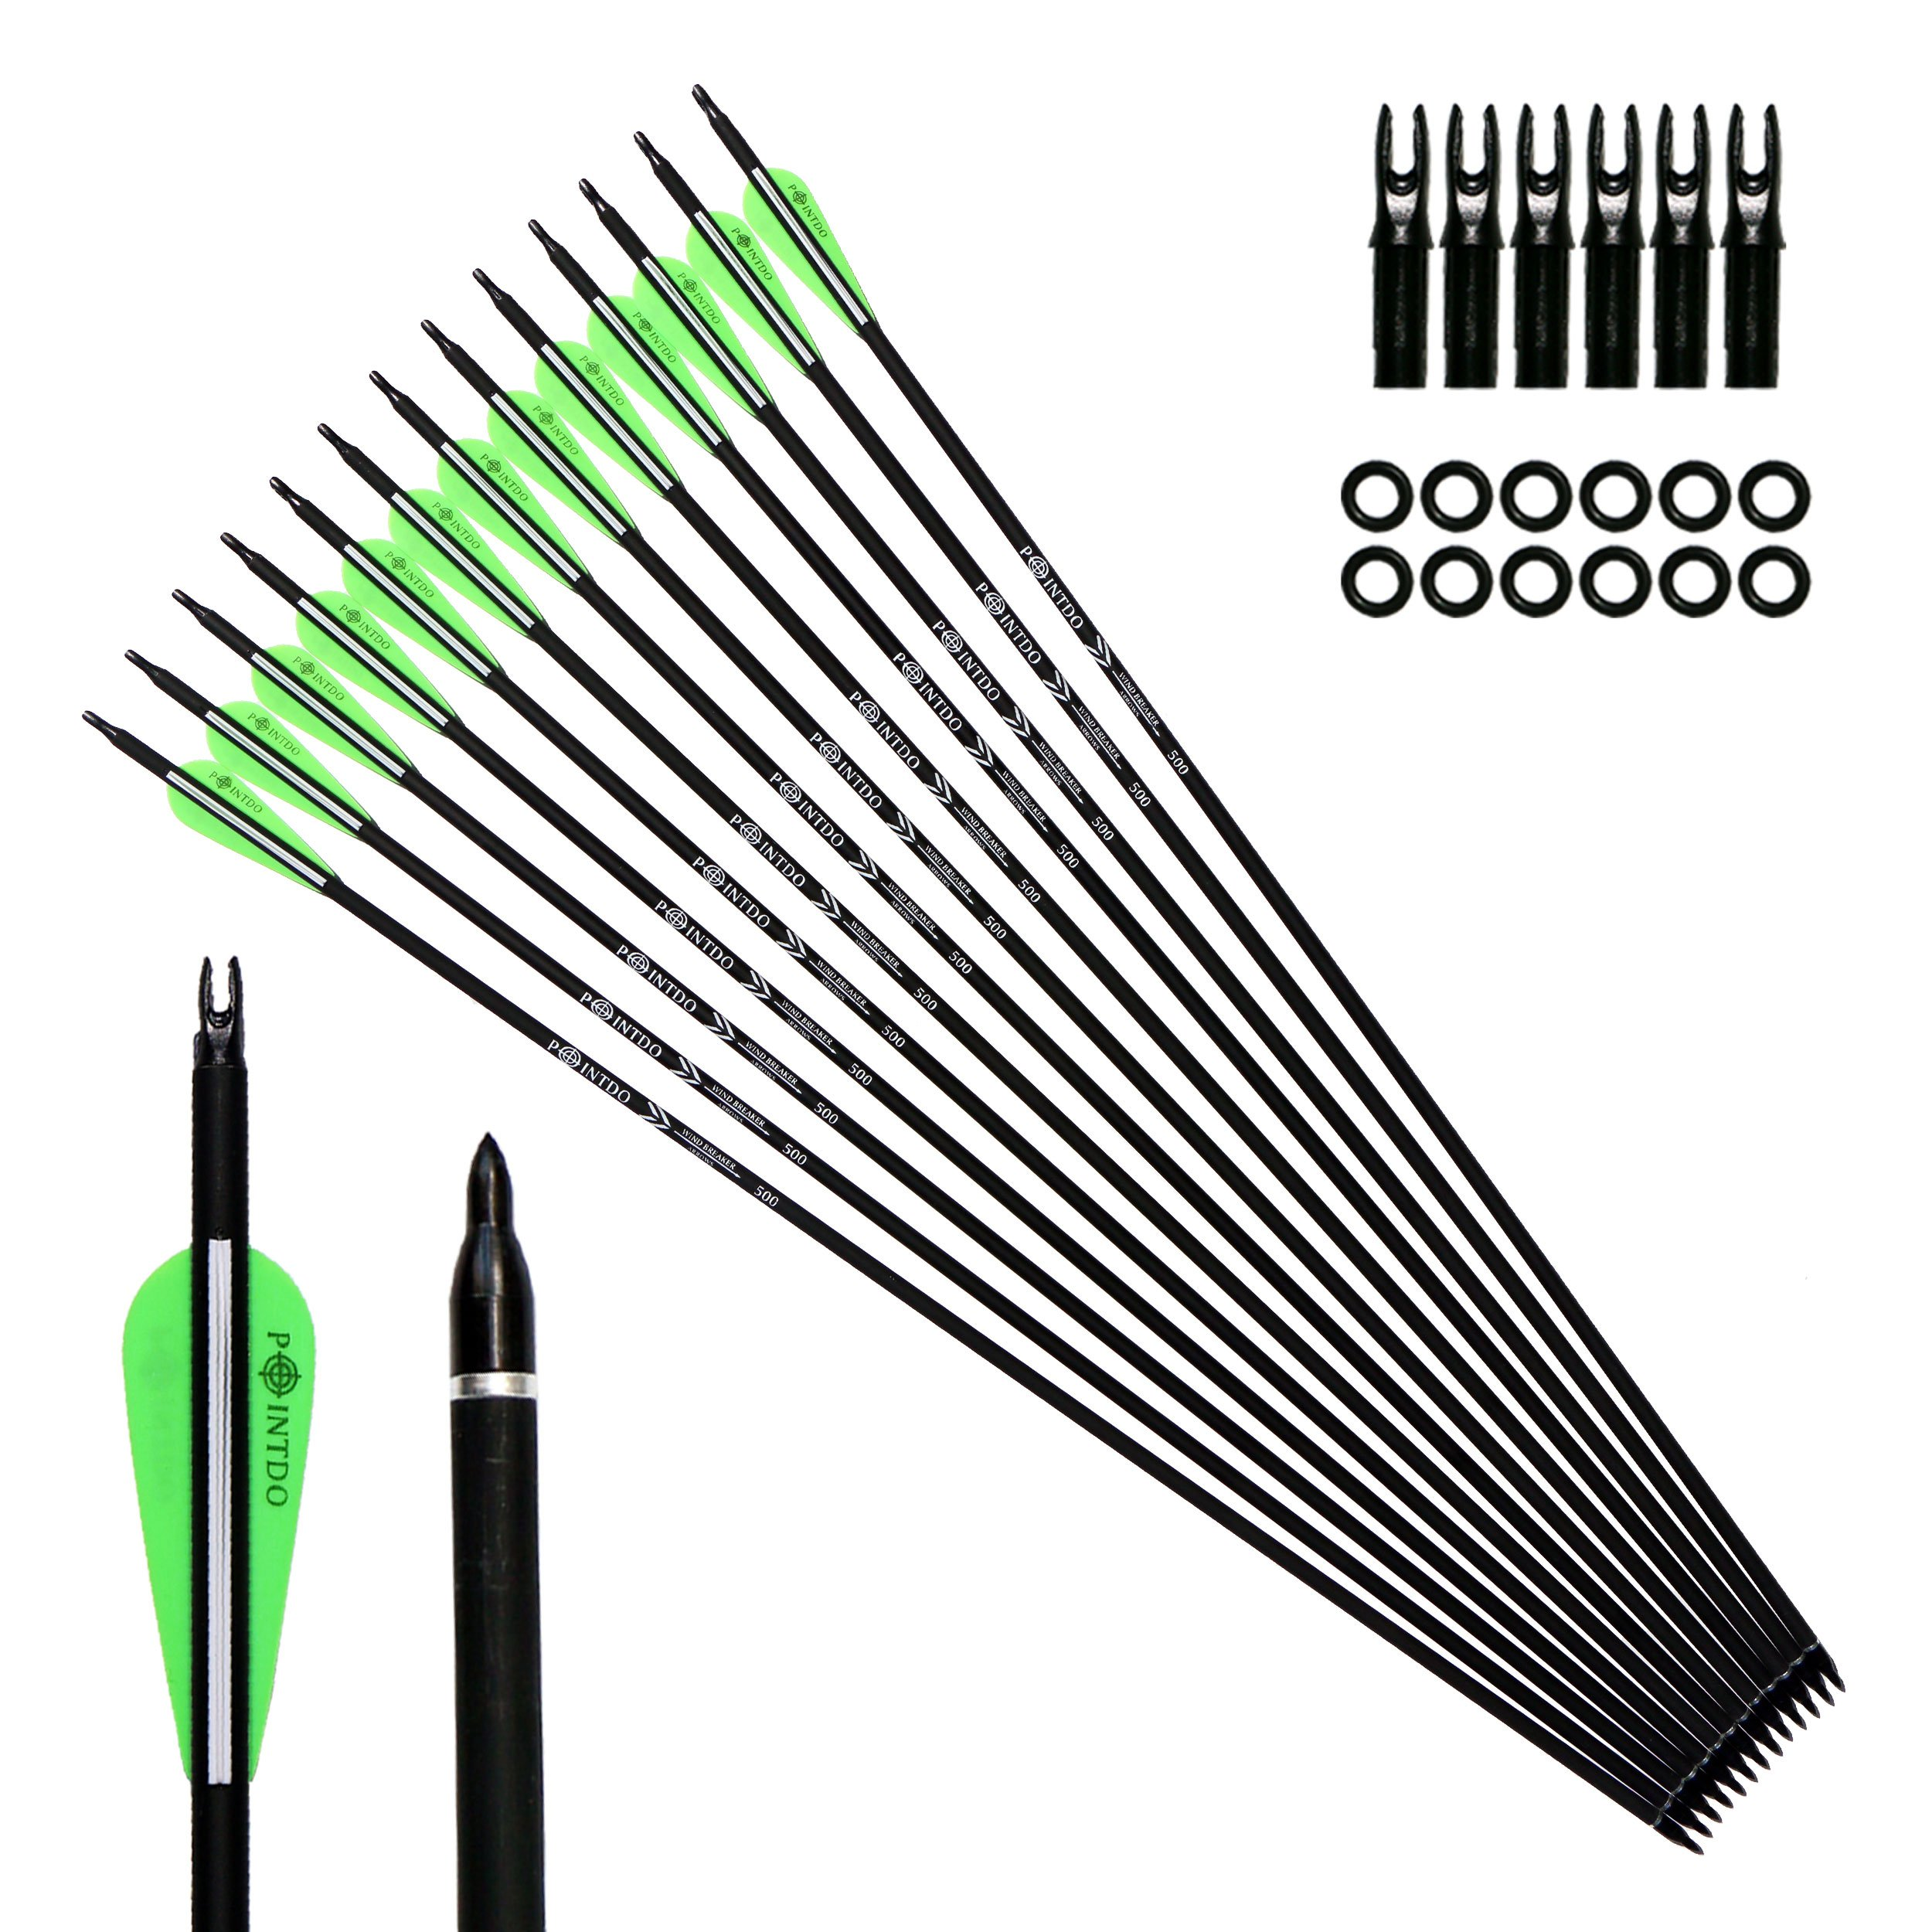 Pointdo 12pcs 30Inch Archery Carbon Arrow Hunting And Practice Targeting Arrow with Replaceable Tips and 3'' Light Vanes For Recurve Bow& Compound Bow